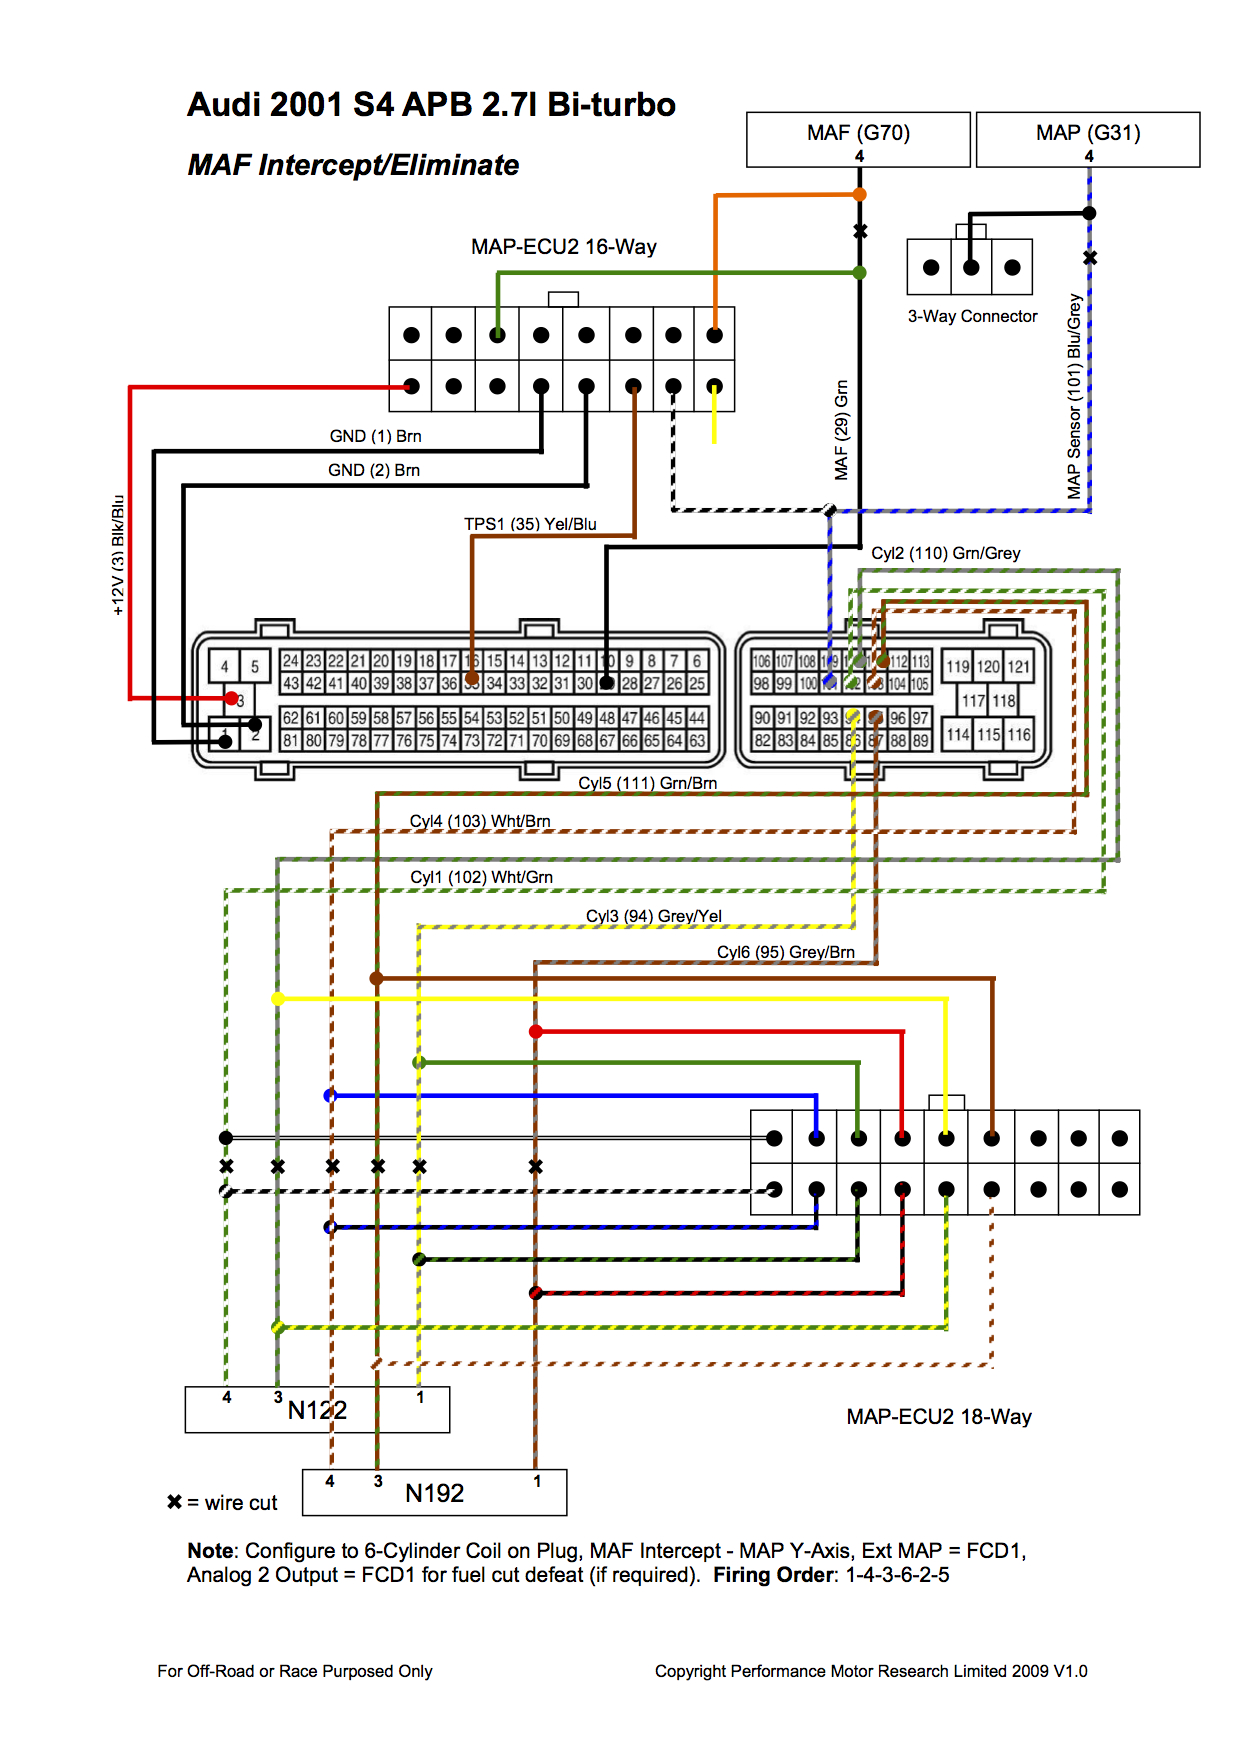 Audi S4 20011 2000 audi s4 wiring diagram 2000 audi quattro \u2022 wiring diagrams 2000 Chrysler 300M Wiring Diagram at n-0.co